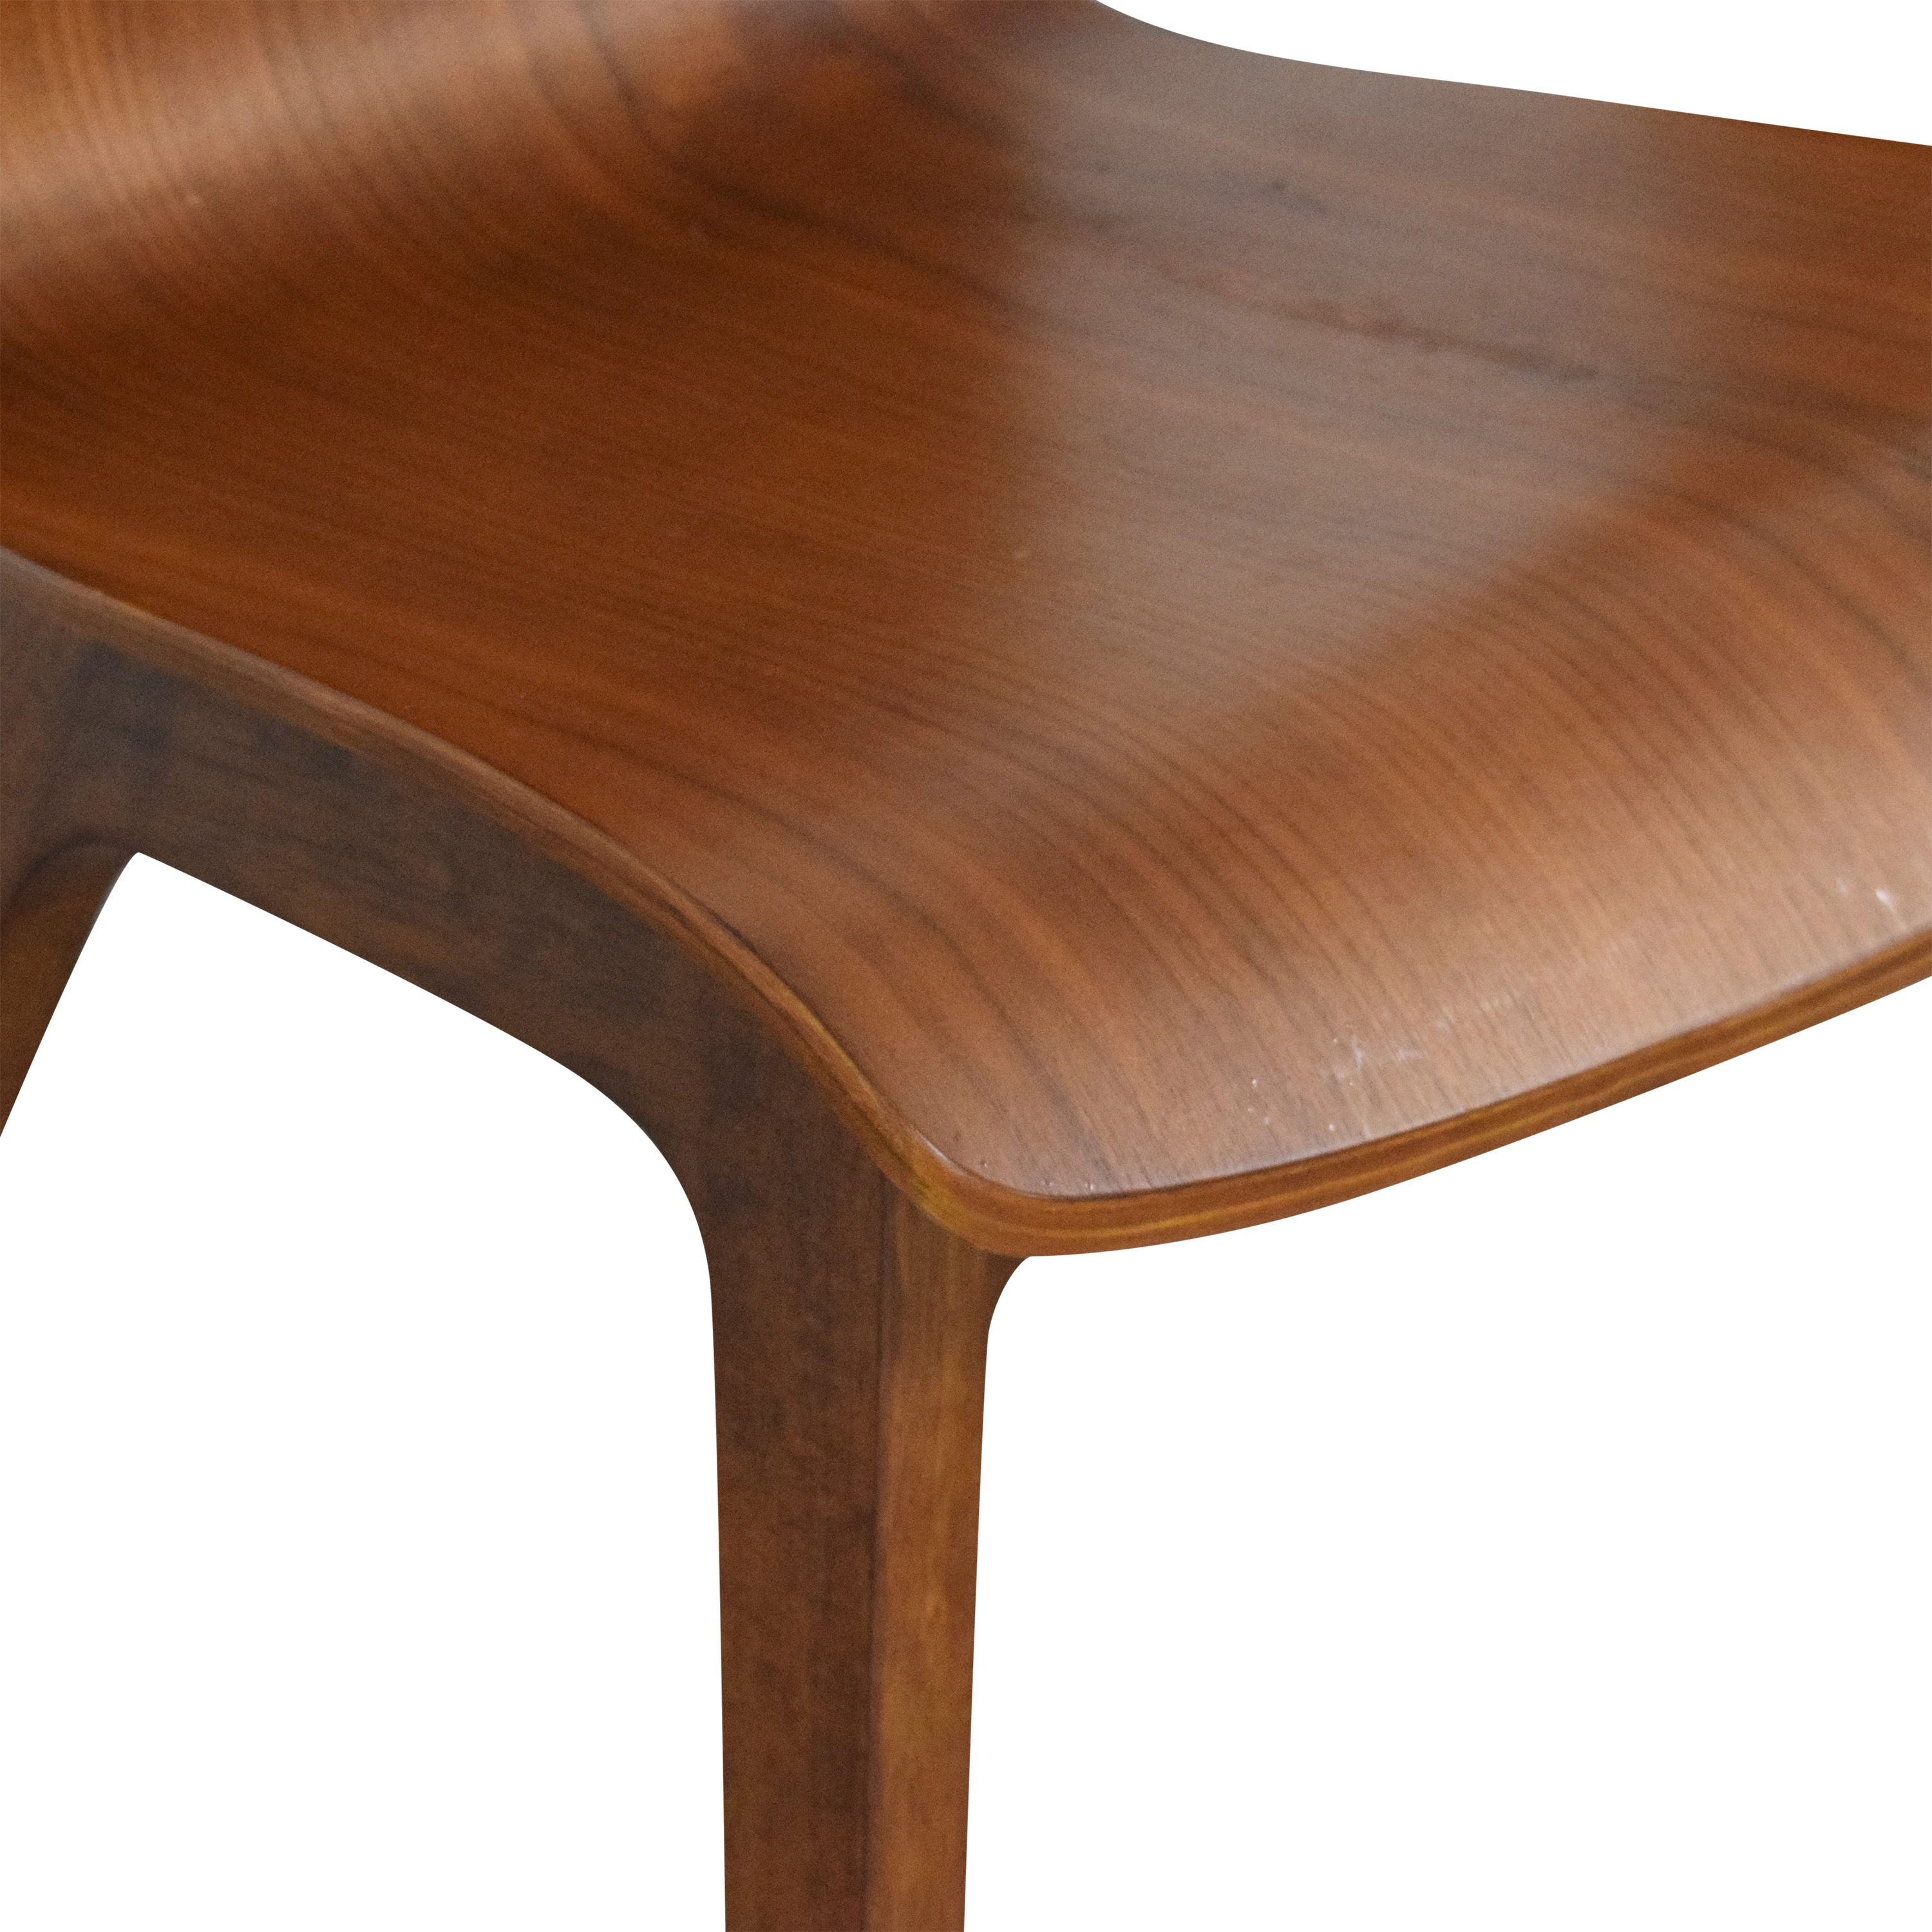 West Elm Crest Bentwood Dining Chairs sale